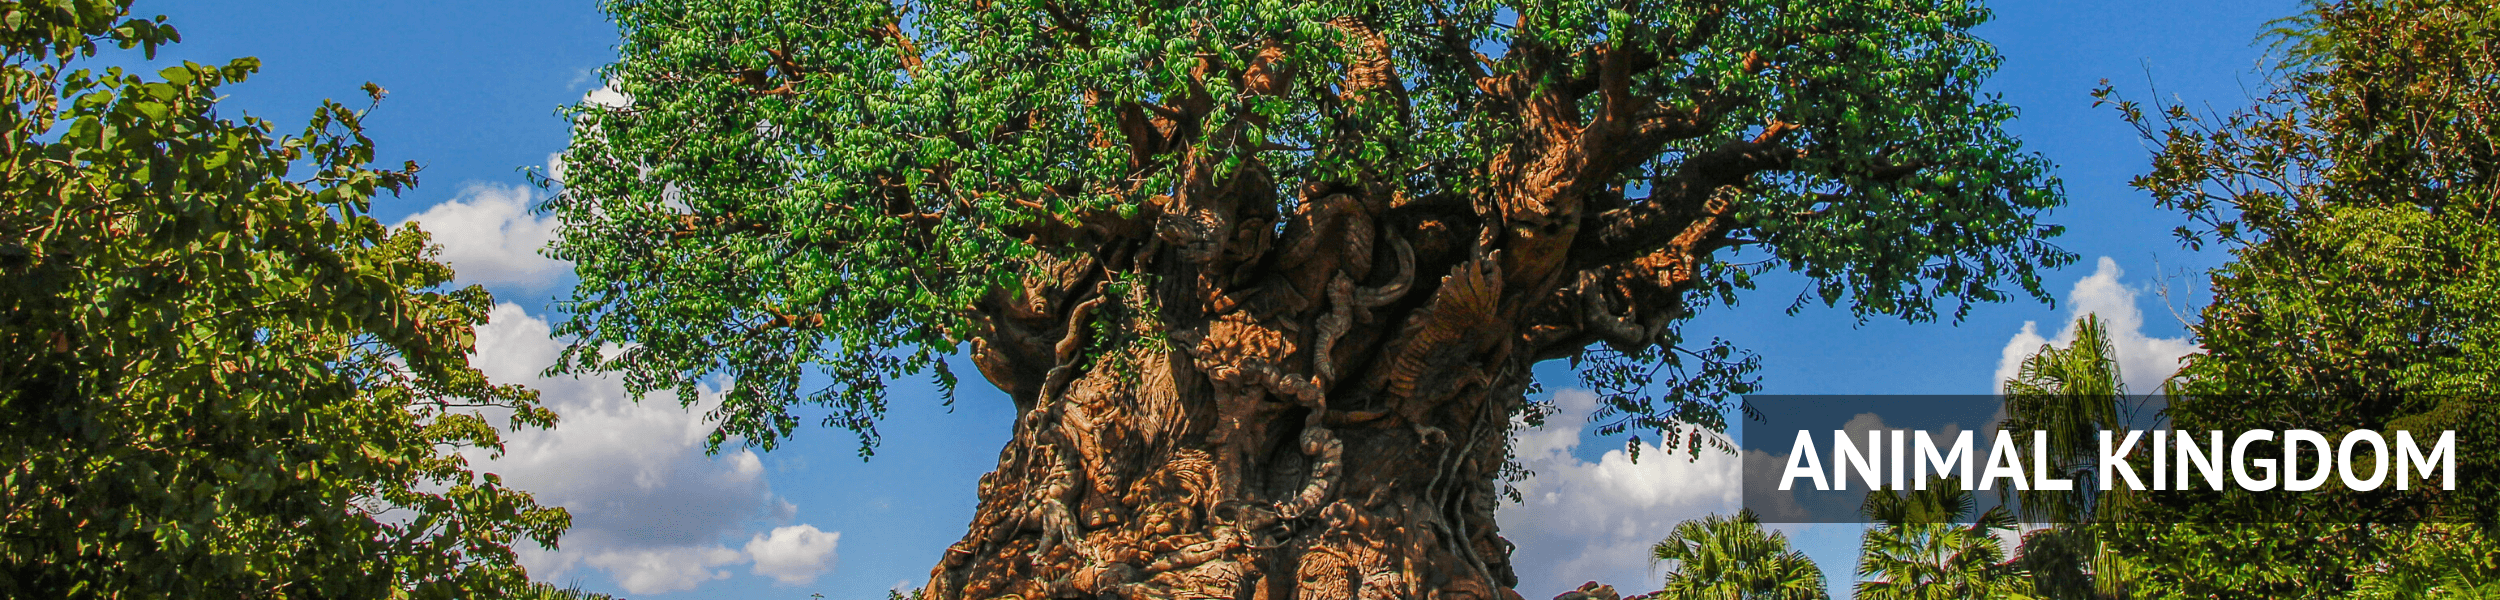 Animal Kingdom Header